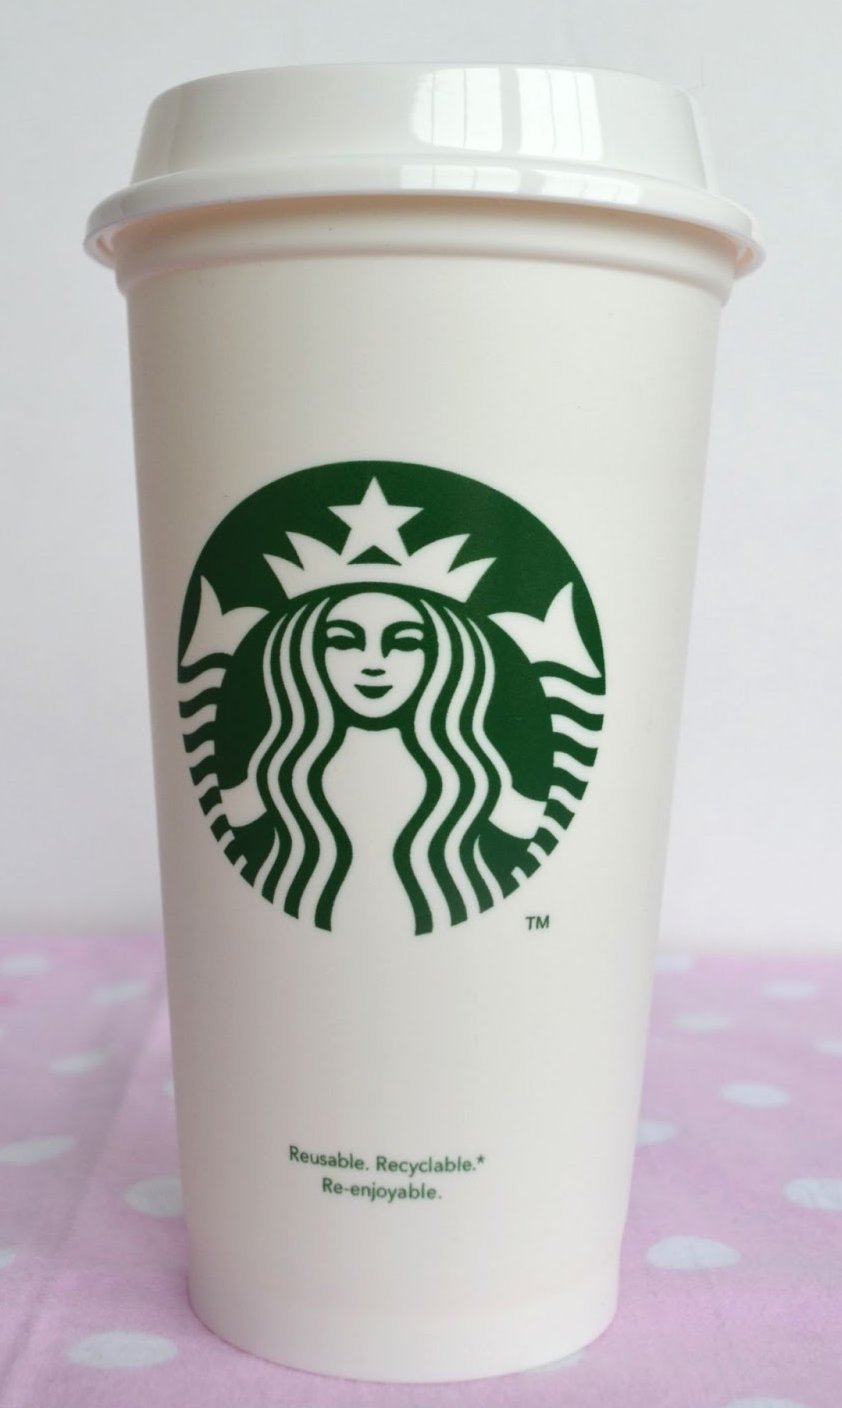 8870af49a2f Starbucks Travel Coffee Cup Reusable Recyclable Spill-proof BPA Free  Dishwasher Safe - Grande 16 Oz (Pack of 6)